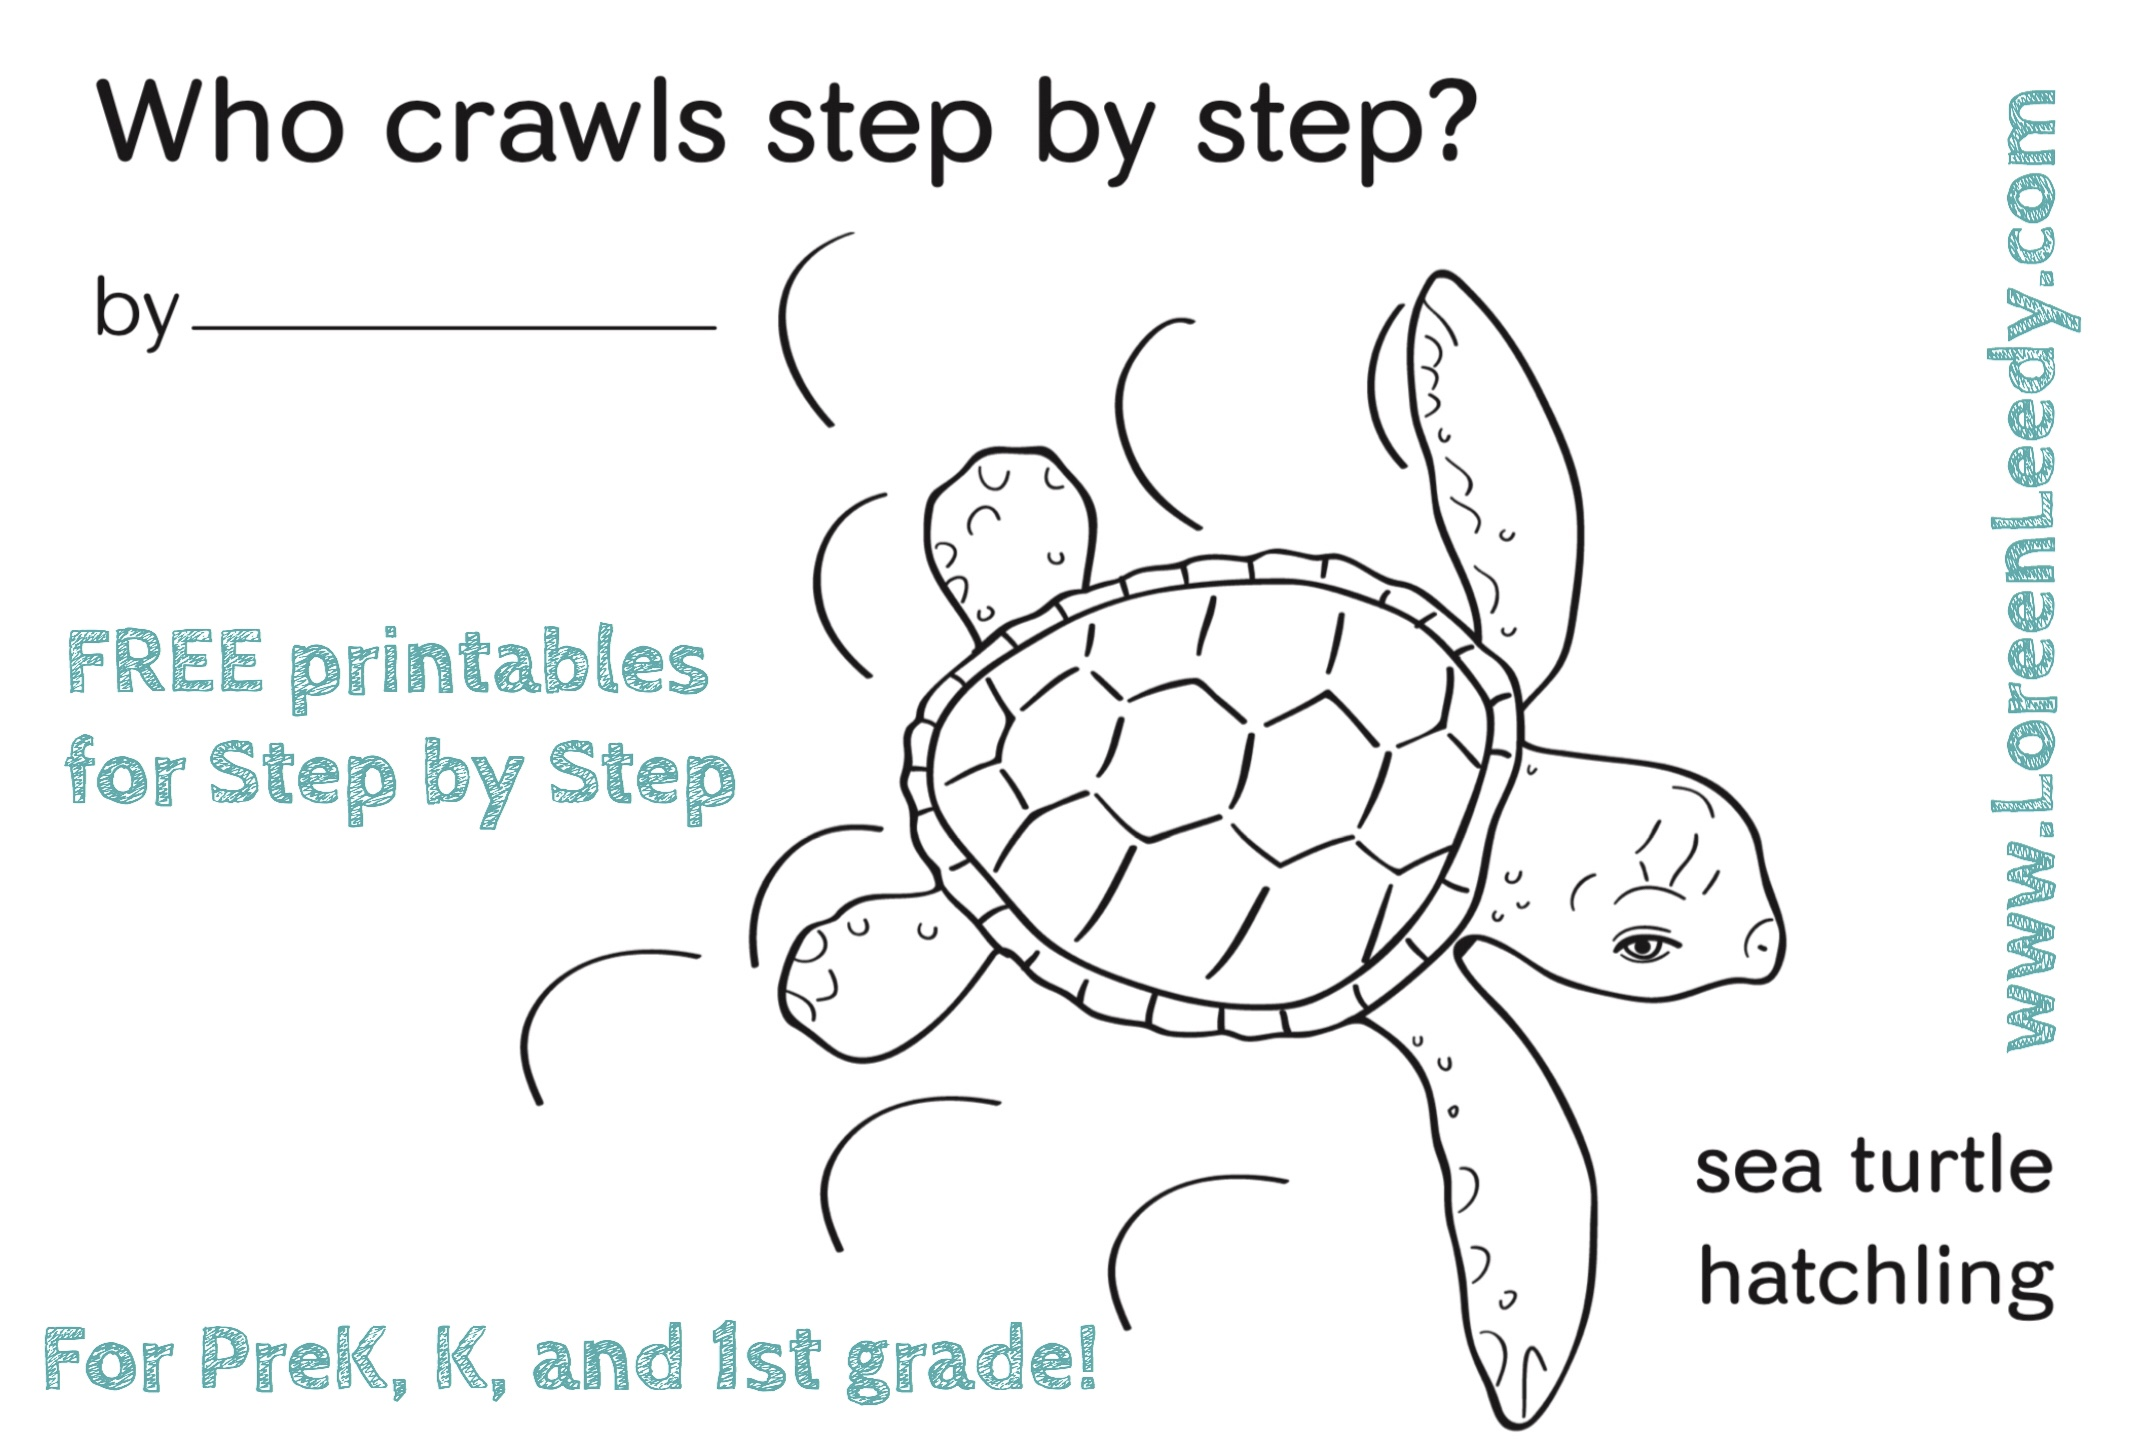 A baby sea turtle coloring page extension for the picture book  Step by Step  by Loreen Leedy